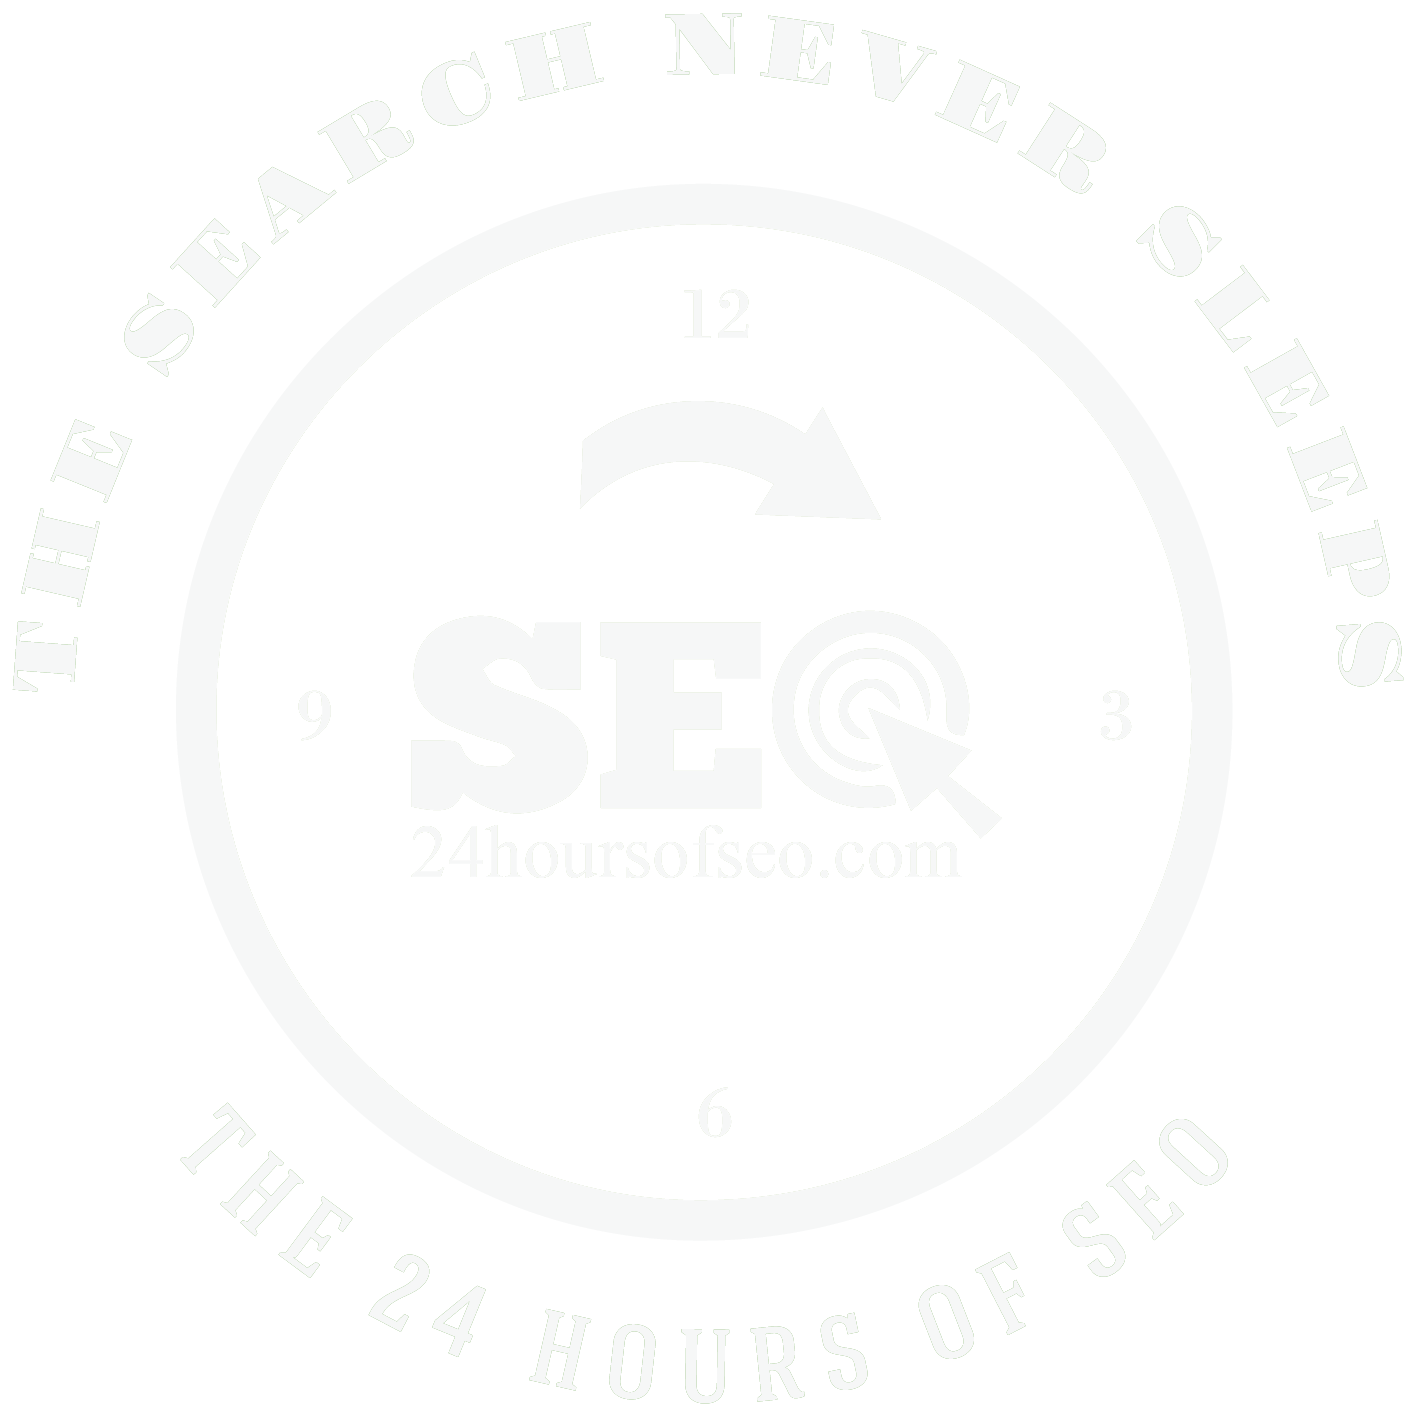 The 24 Hours of SEO